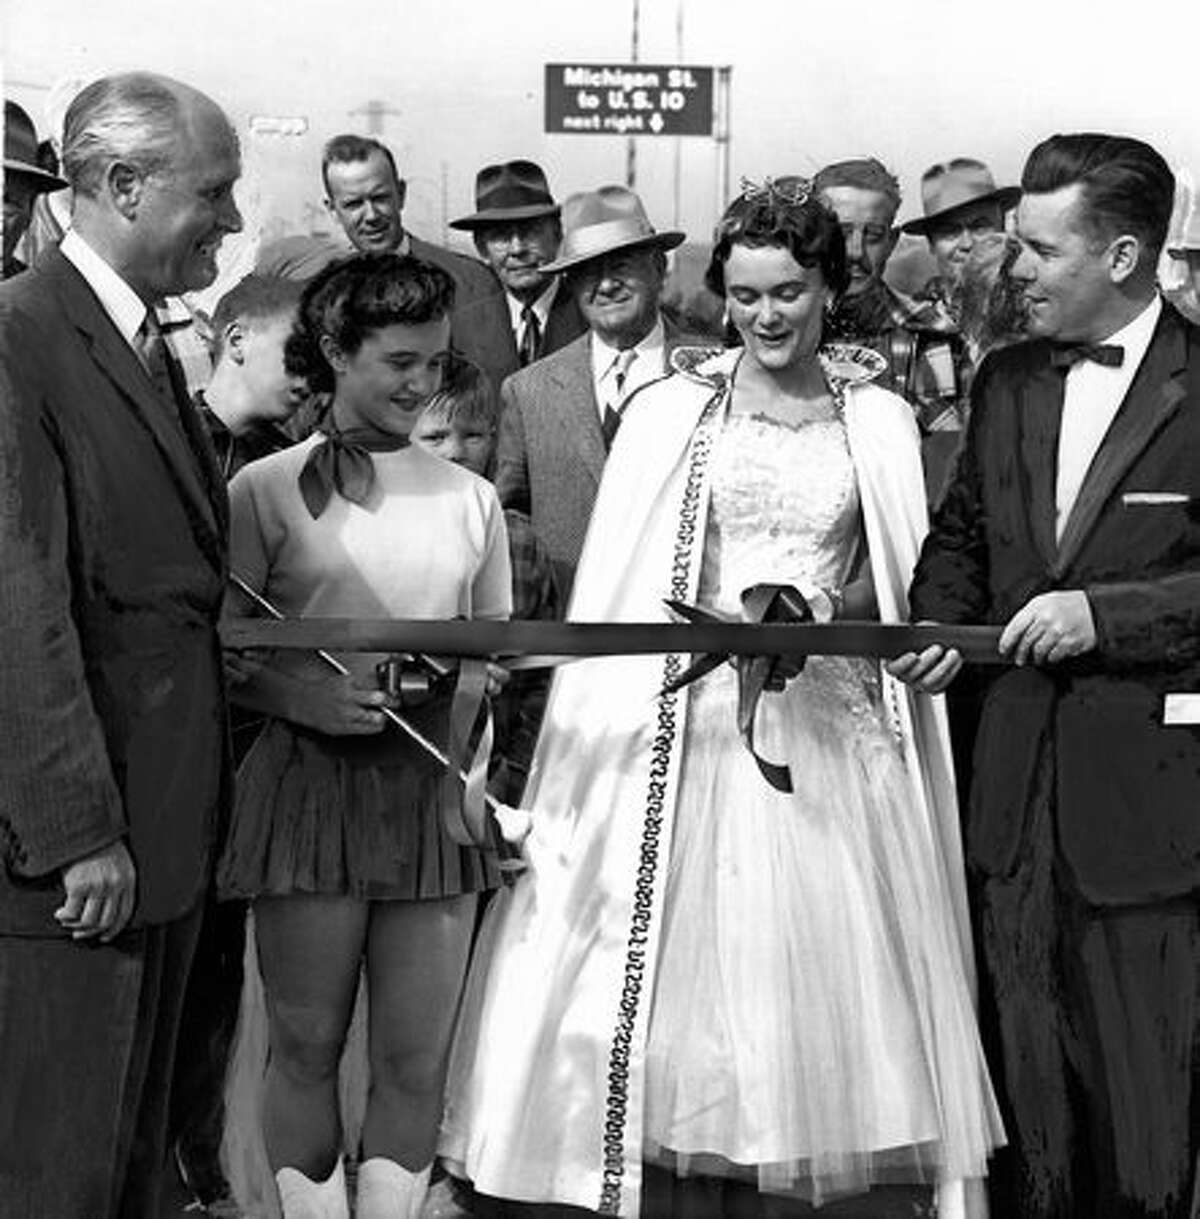 The September 1956 photo caption read: Gov. Arthur R. Langlie (left) and Mayor Gordon S. Clinton are shown here with the girls they chose to do the ribbon cutting at the opening of the new First Avenue South Bridge. Doing the cutting are (left) Billie Lee Westcott, 14, drum majorette and mascot of the Highline High School band, and Carol Hawkinson, 18, Miss Southwest Seattle.